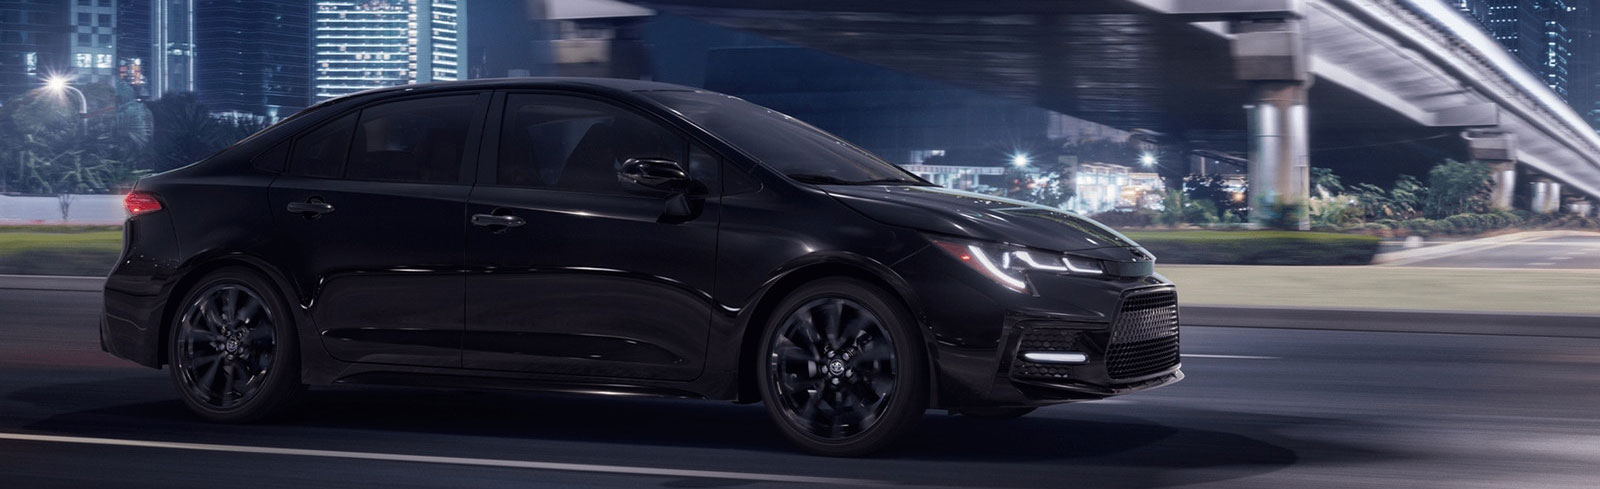 All New 2020 Toyota Corolla Hybrid Available at Future Toyota of Yuba City